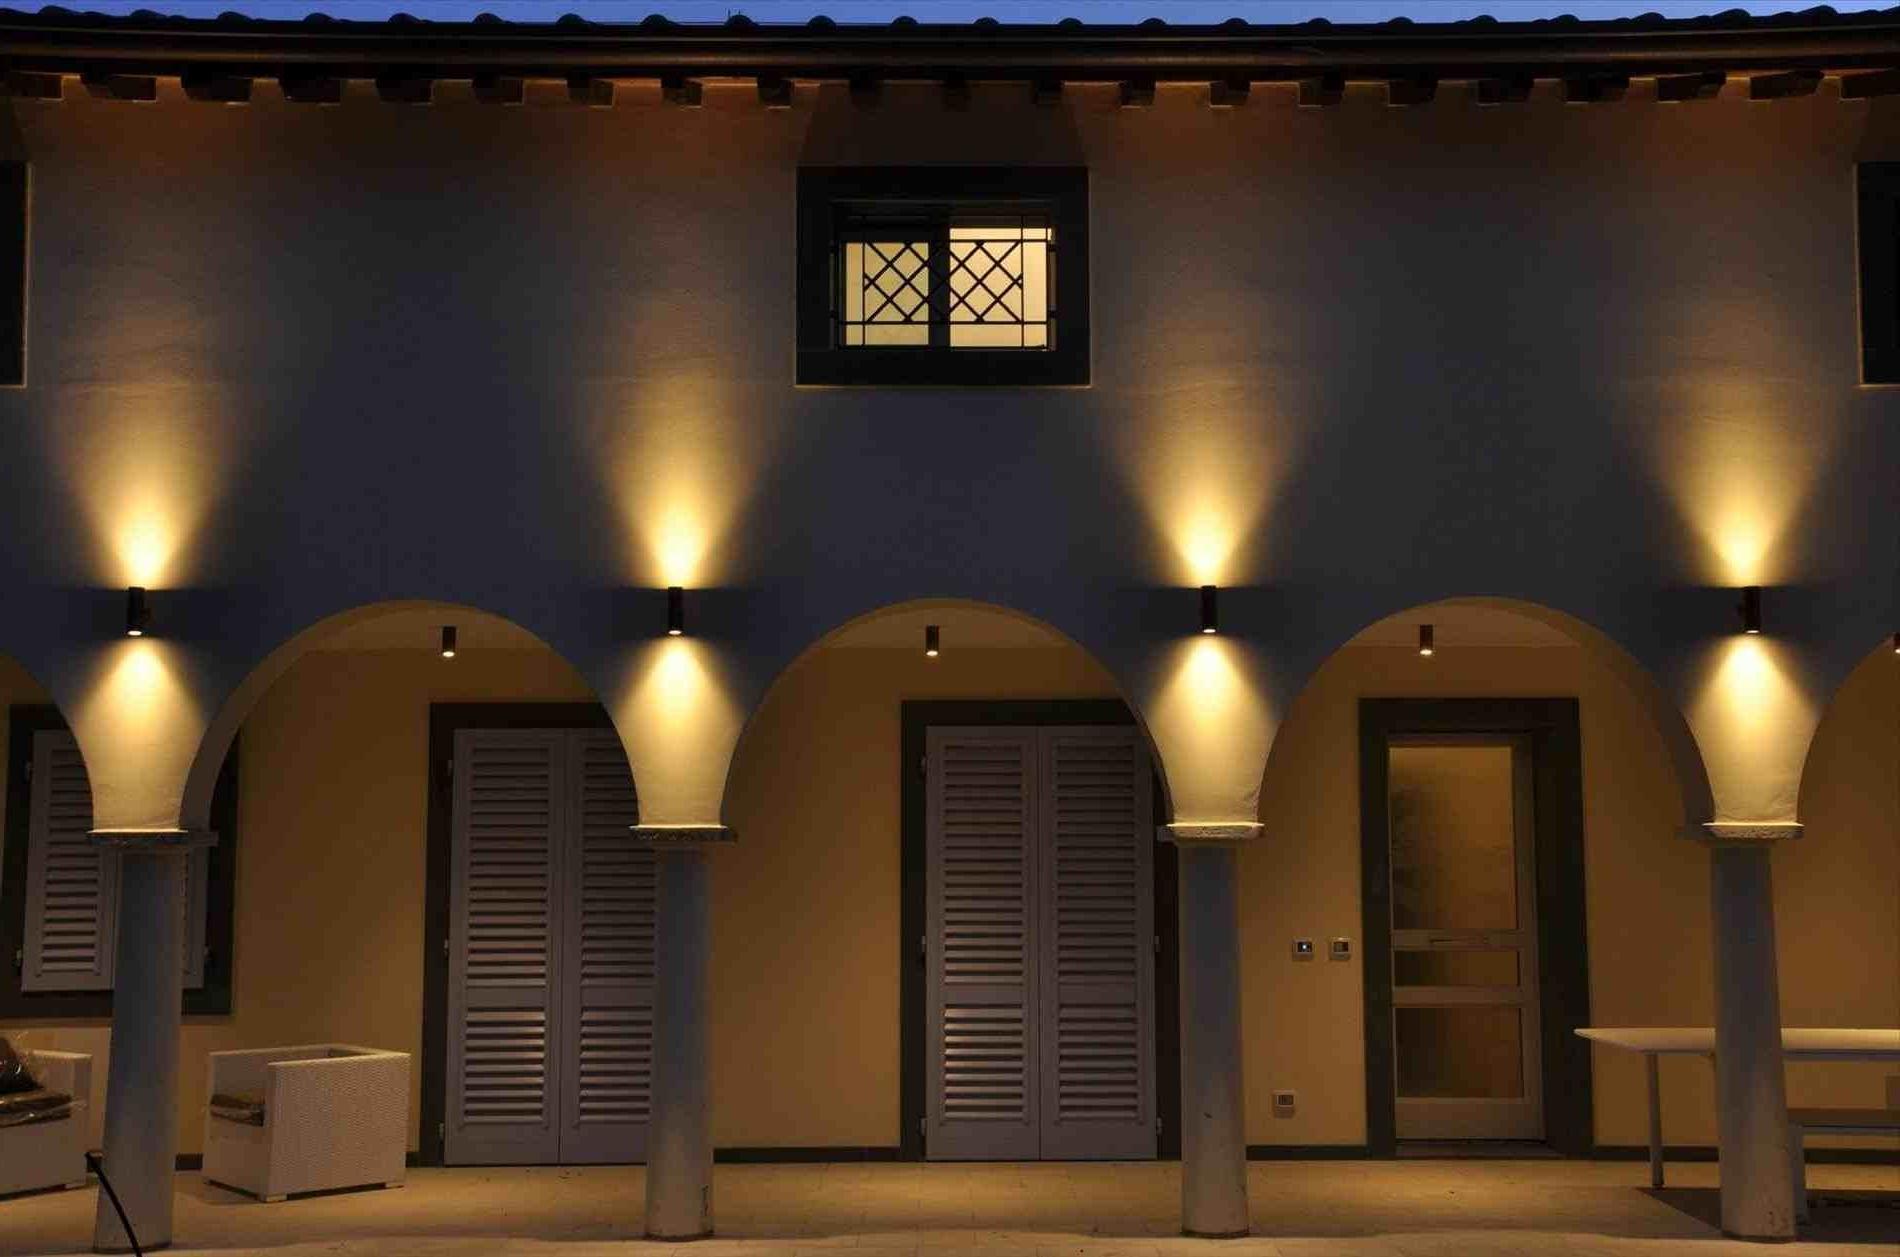 Popular Up And Down Outdoor Wall Lighting In Wall Up Down Outdoor Wall Lights Lights Design (View 13 of 20)